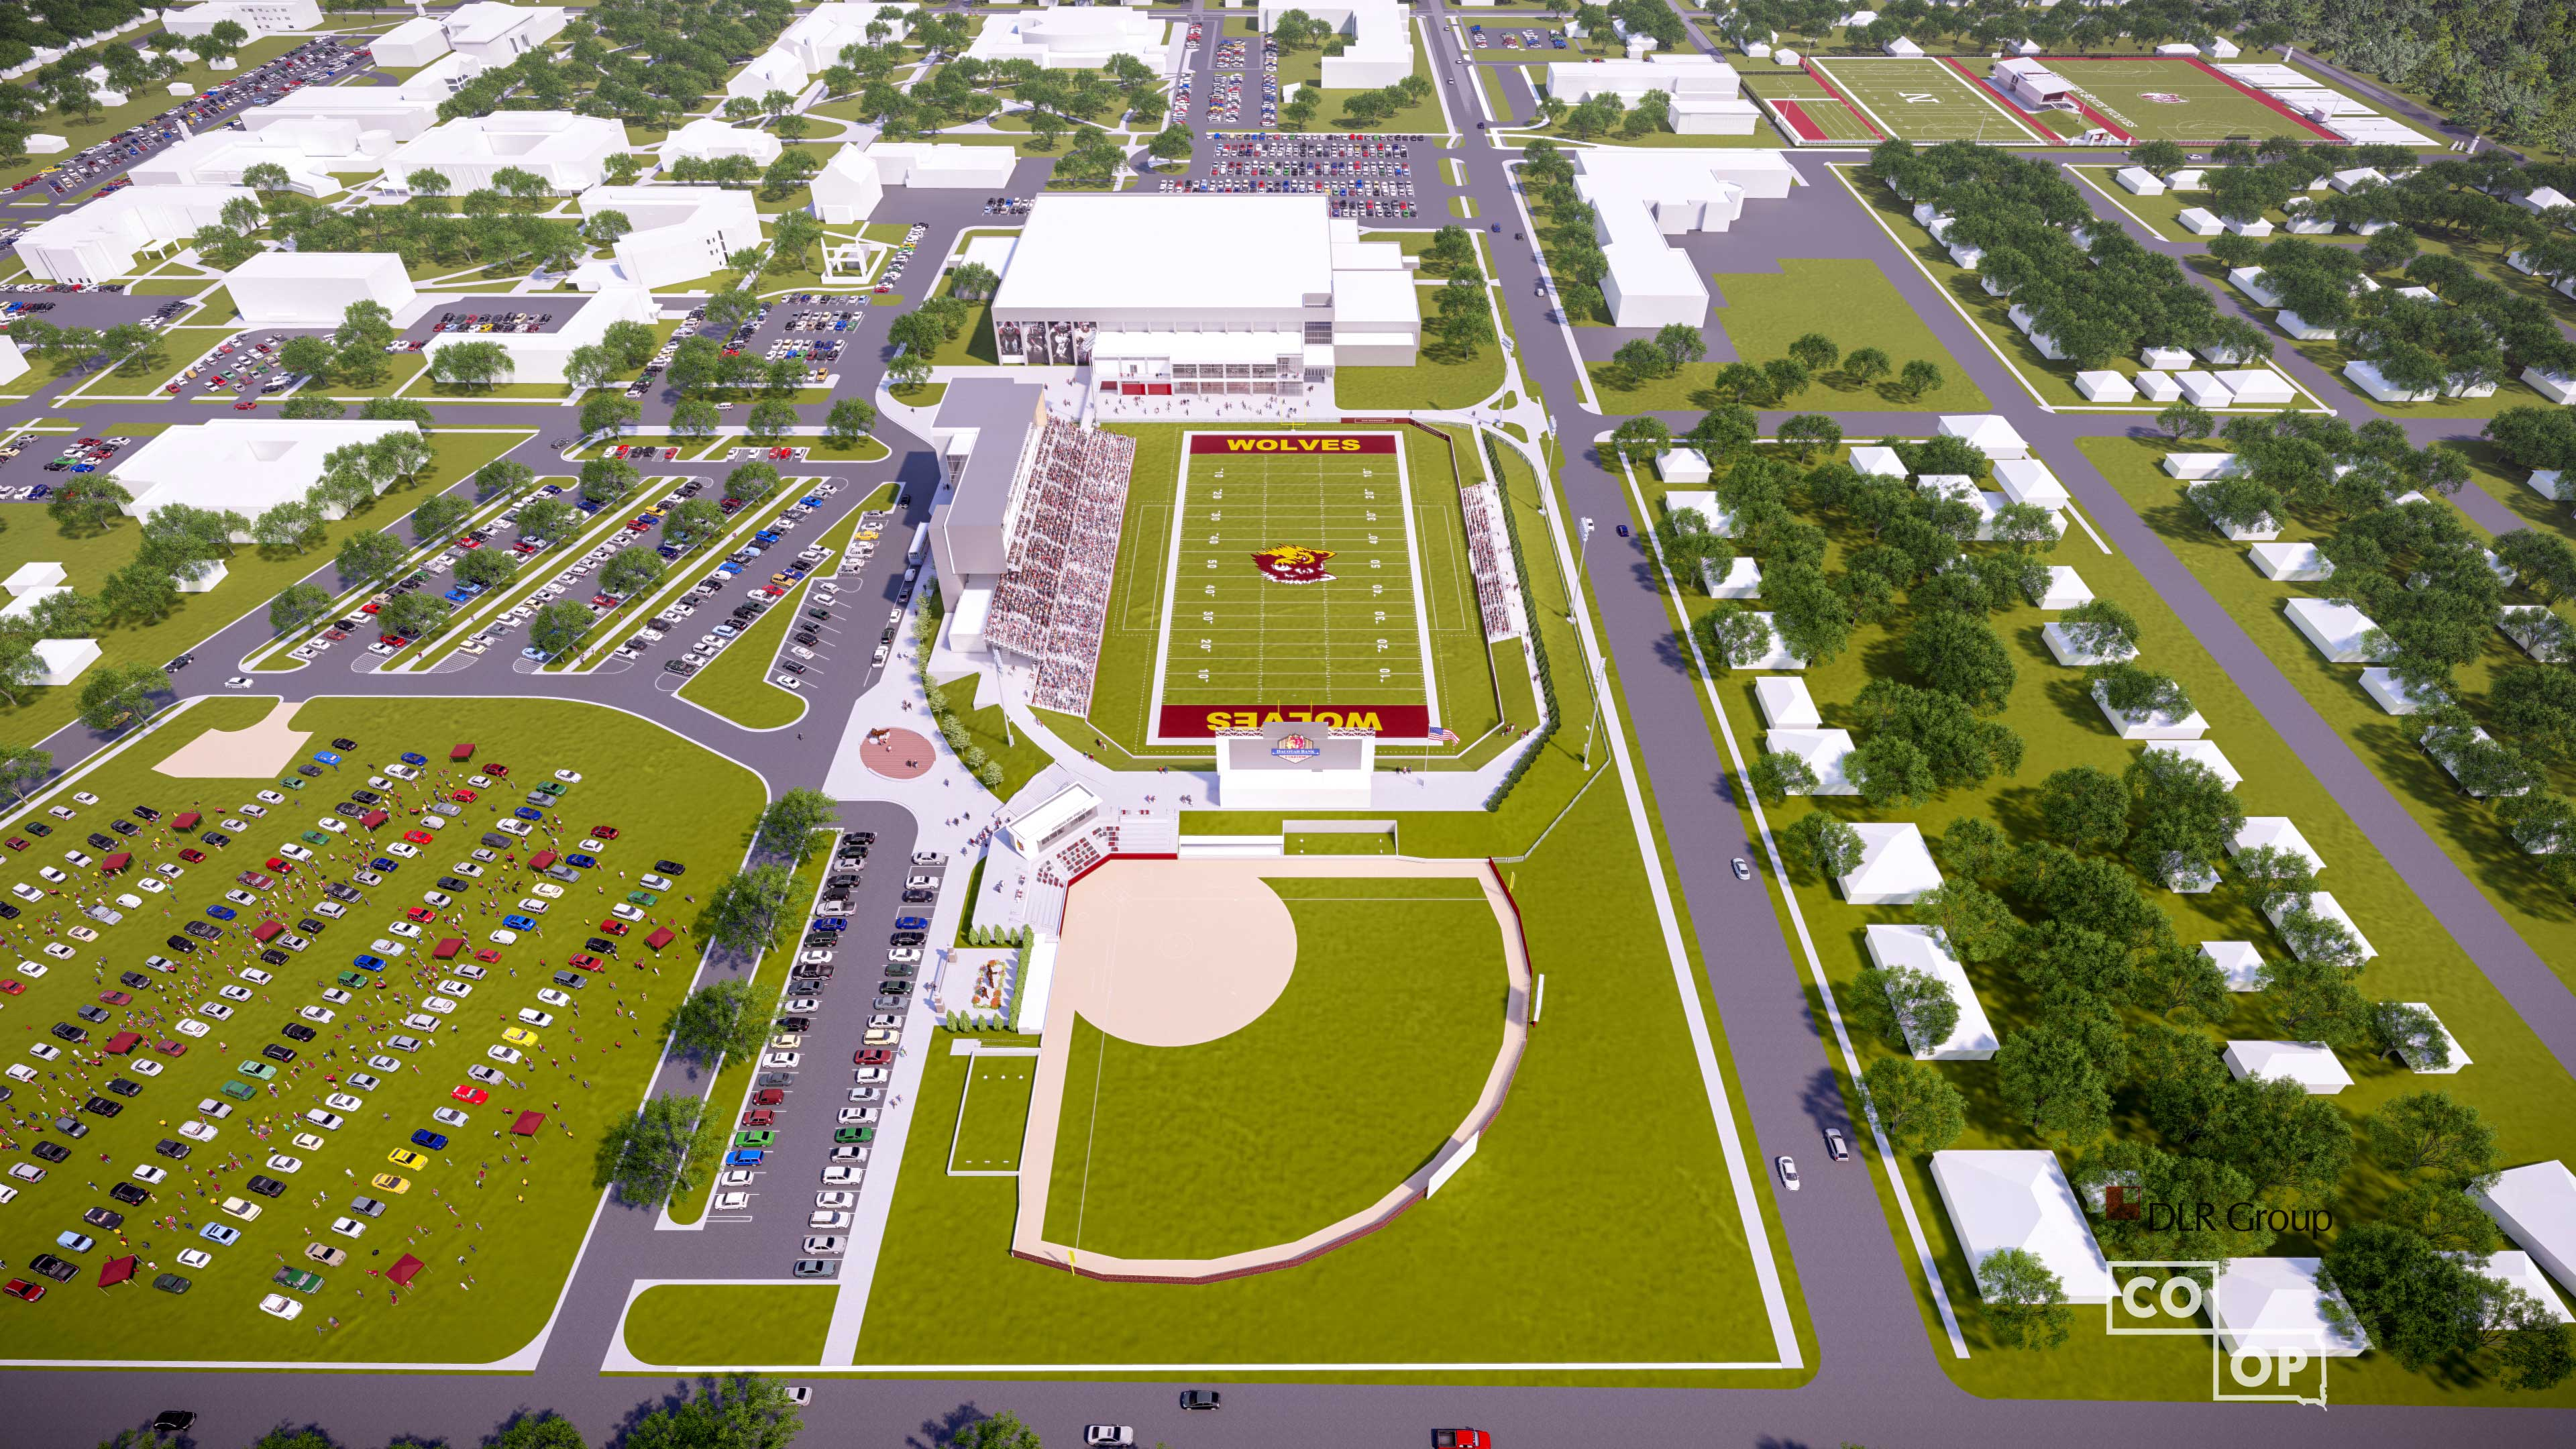 Overhead view of sports complex